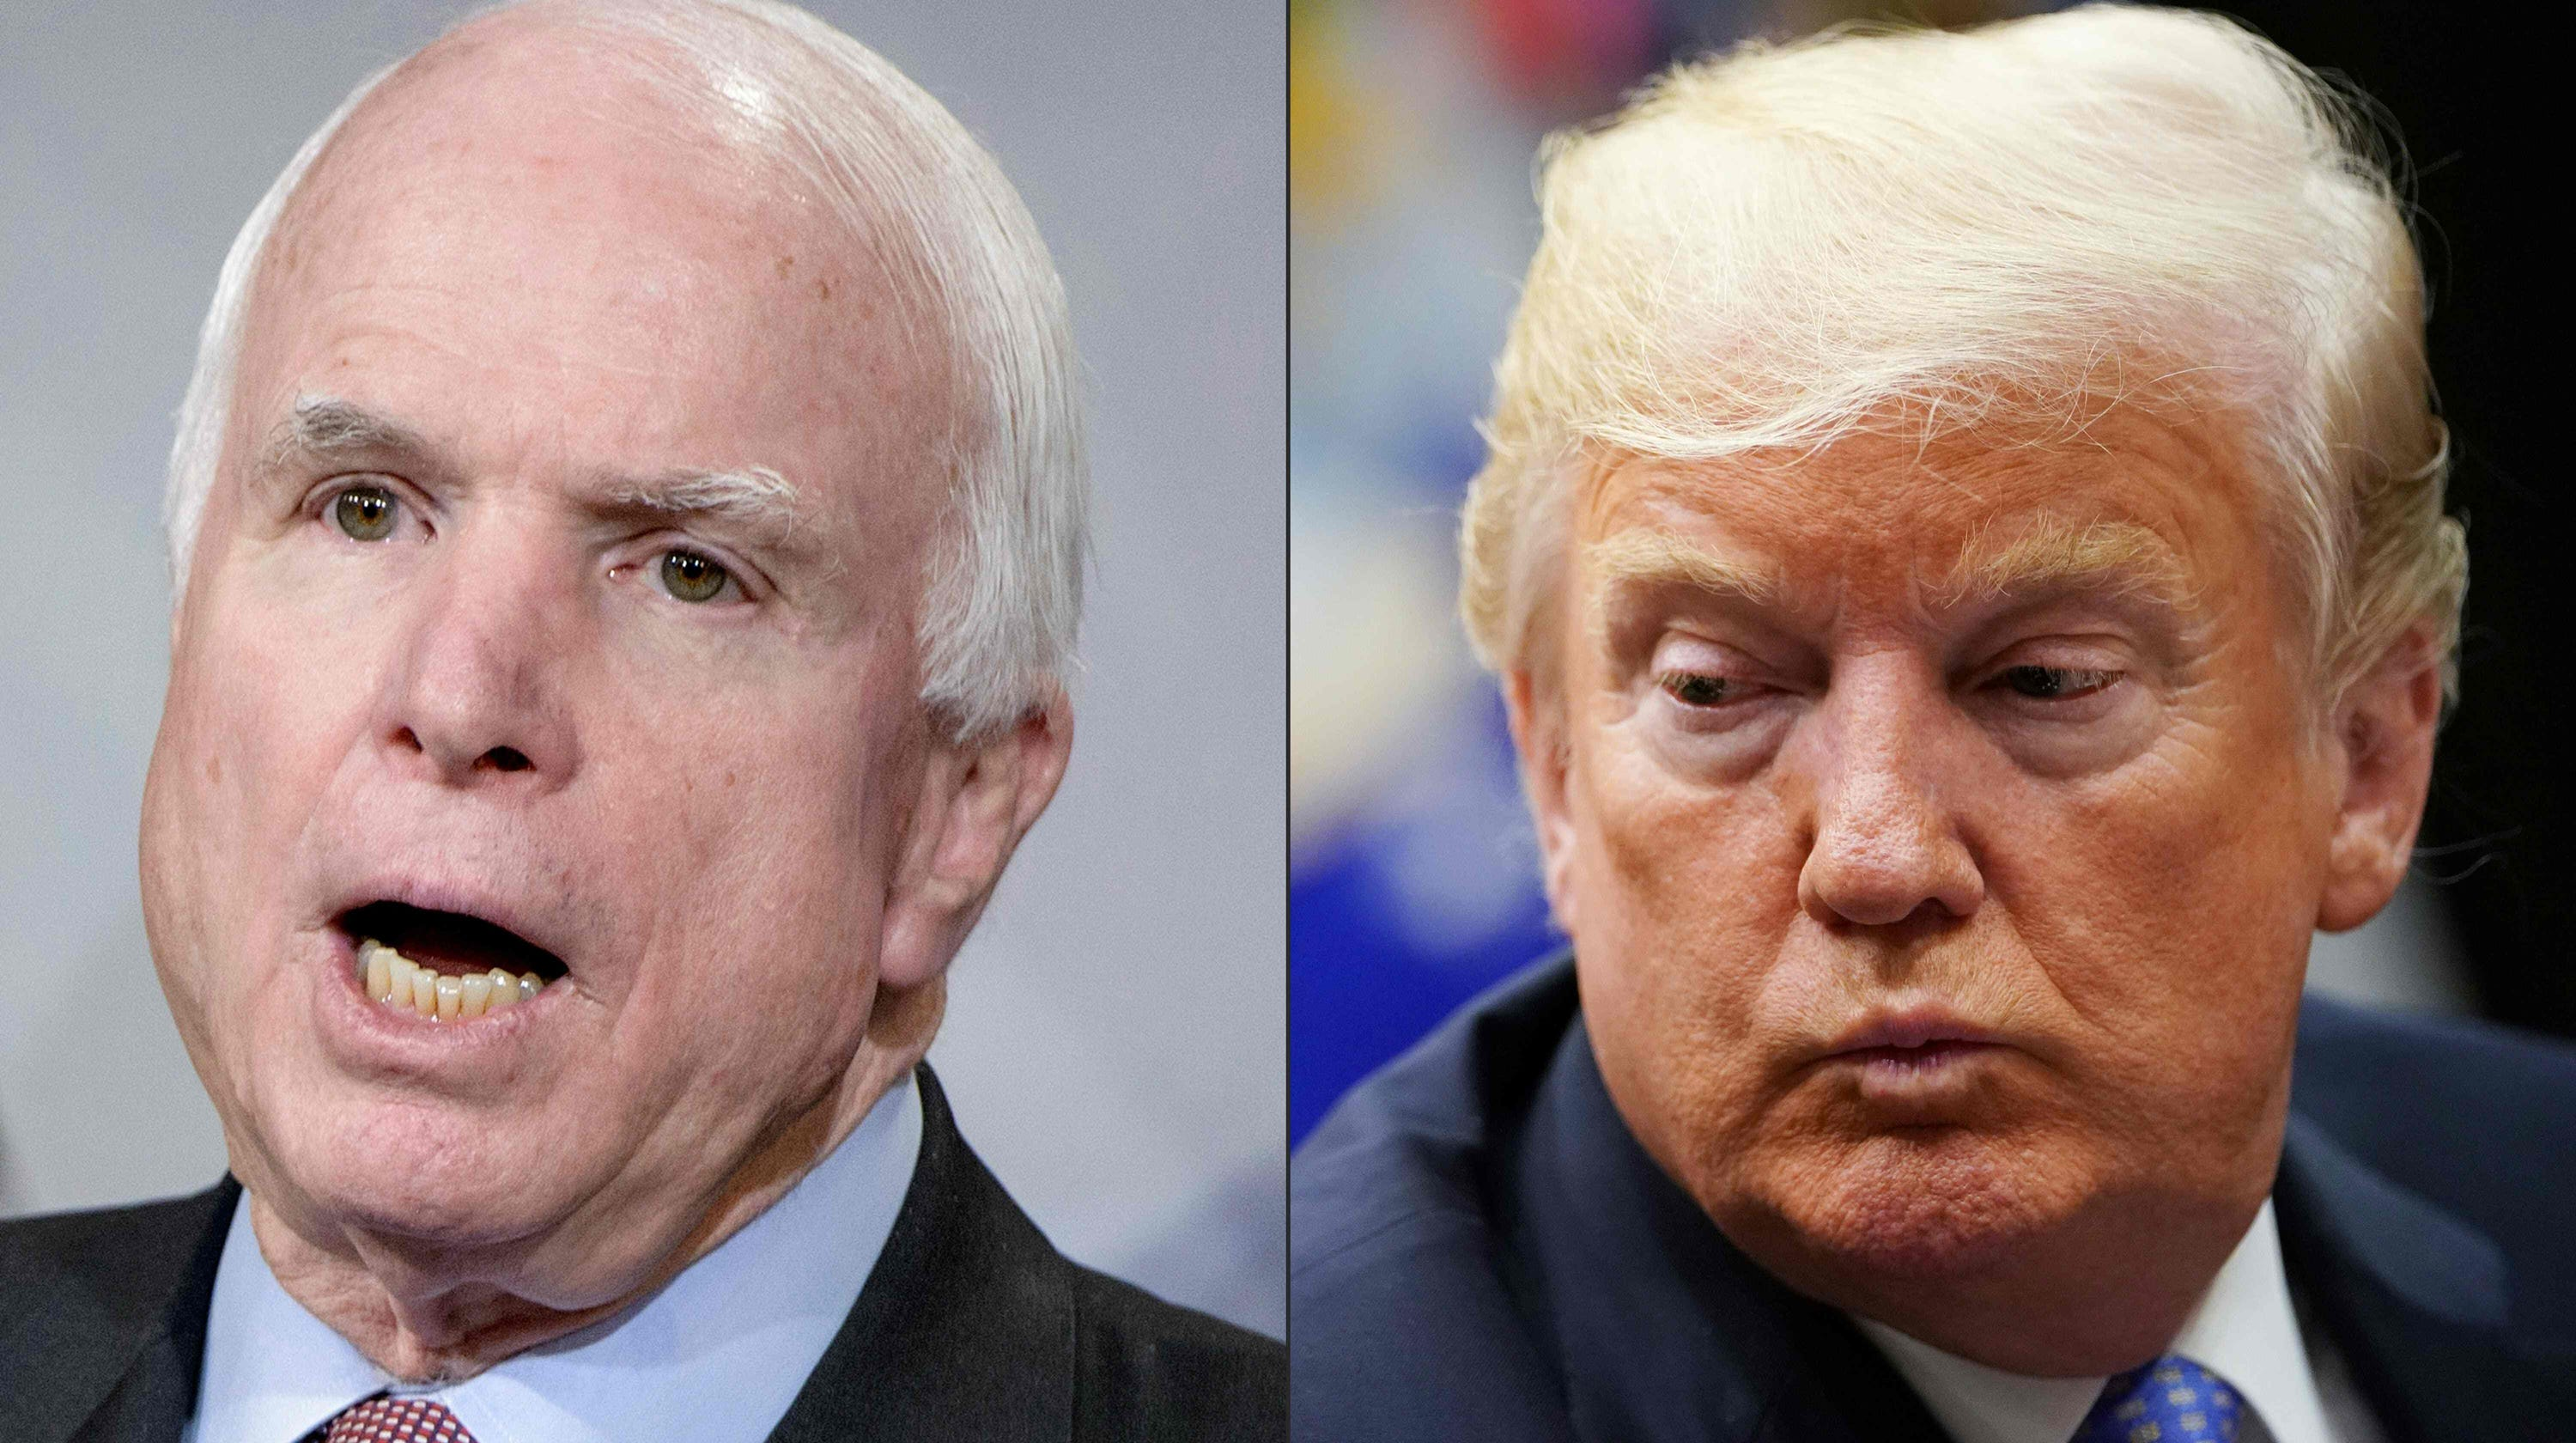 'But, Mr. President, he's dead': Trump defends his attacks against McCain in Fox interview